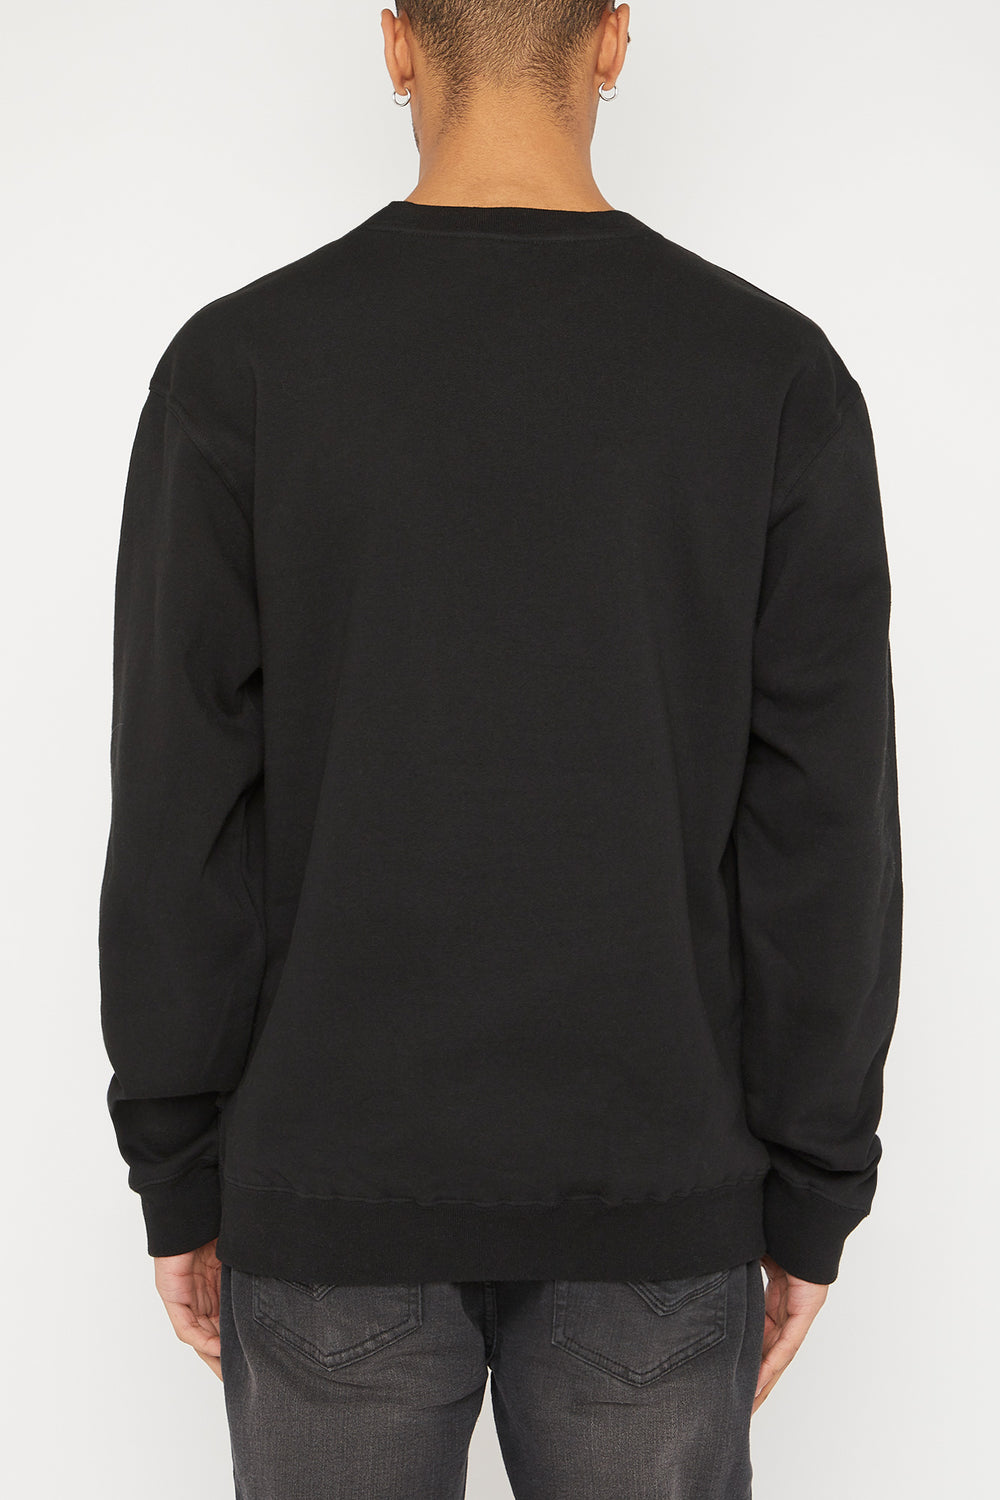 HUF Playboy Long Sleeve Top Black